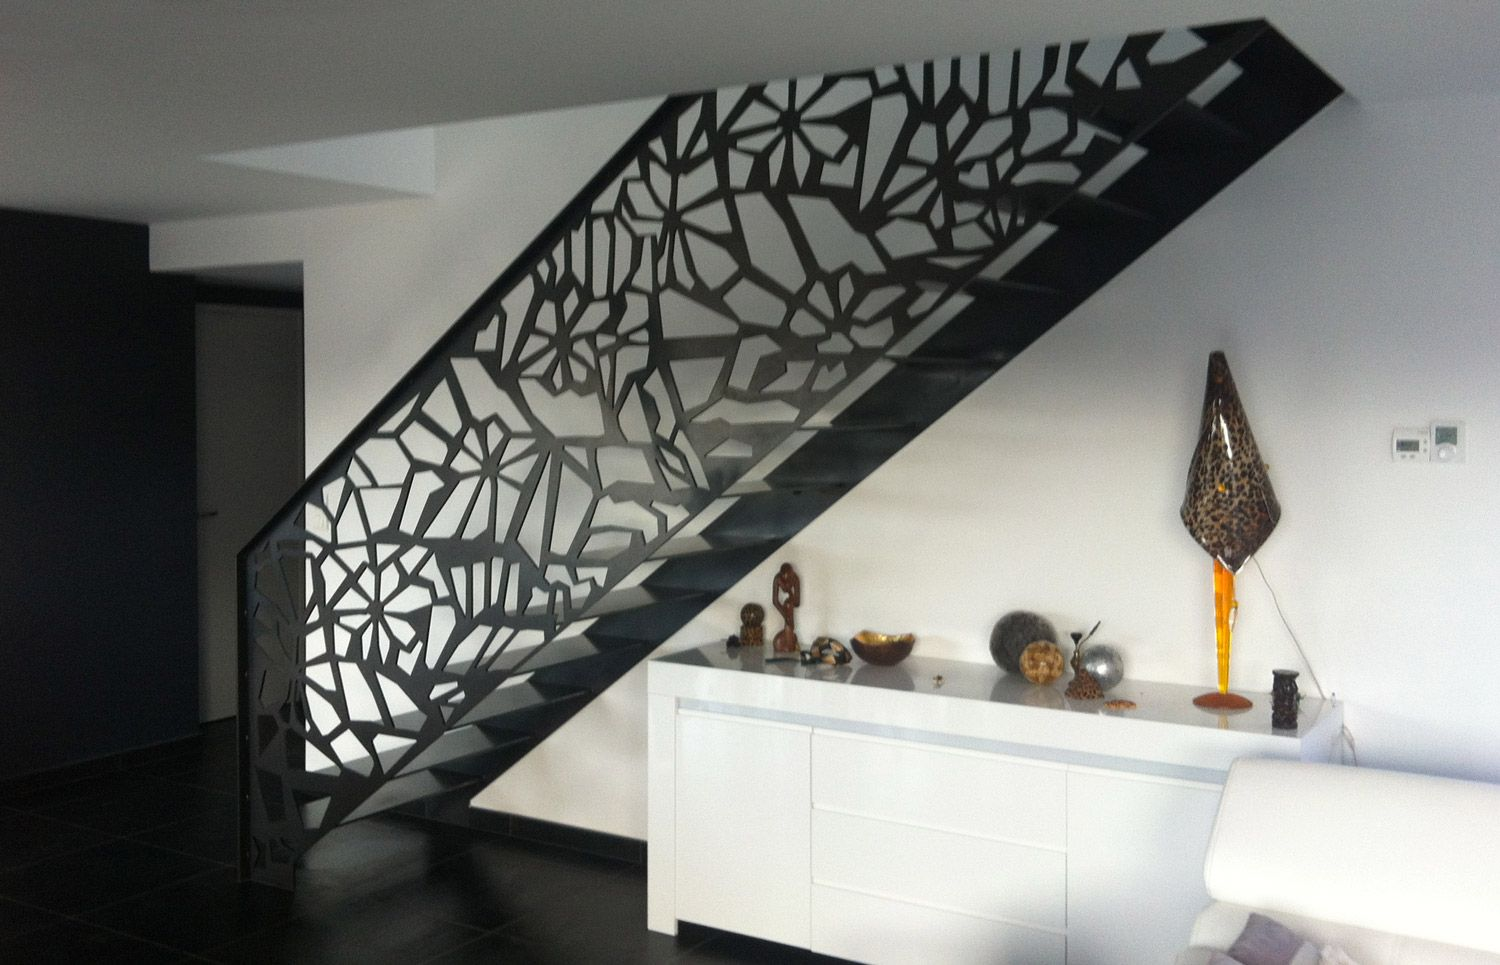 Pin by andrew higgins on metal art pinterest for Escalier interieur design